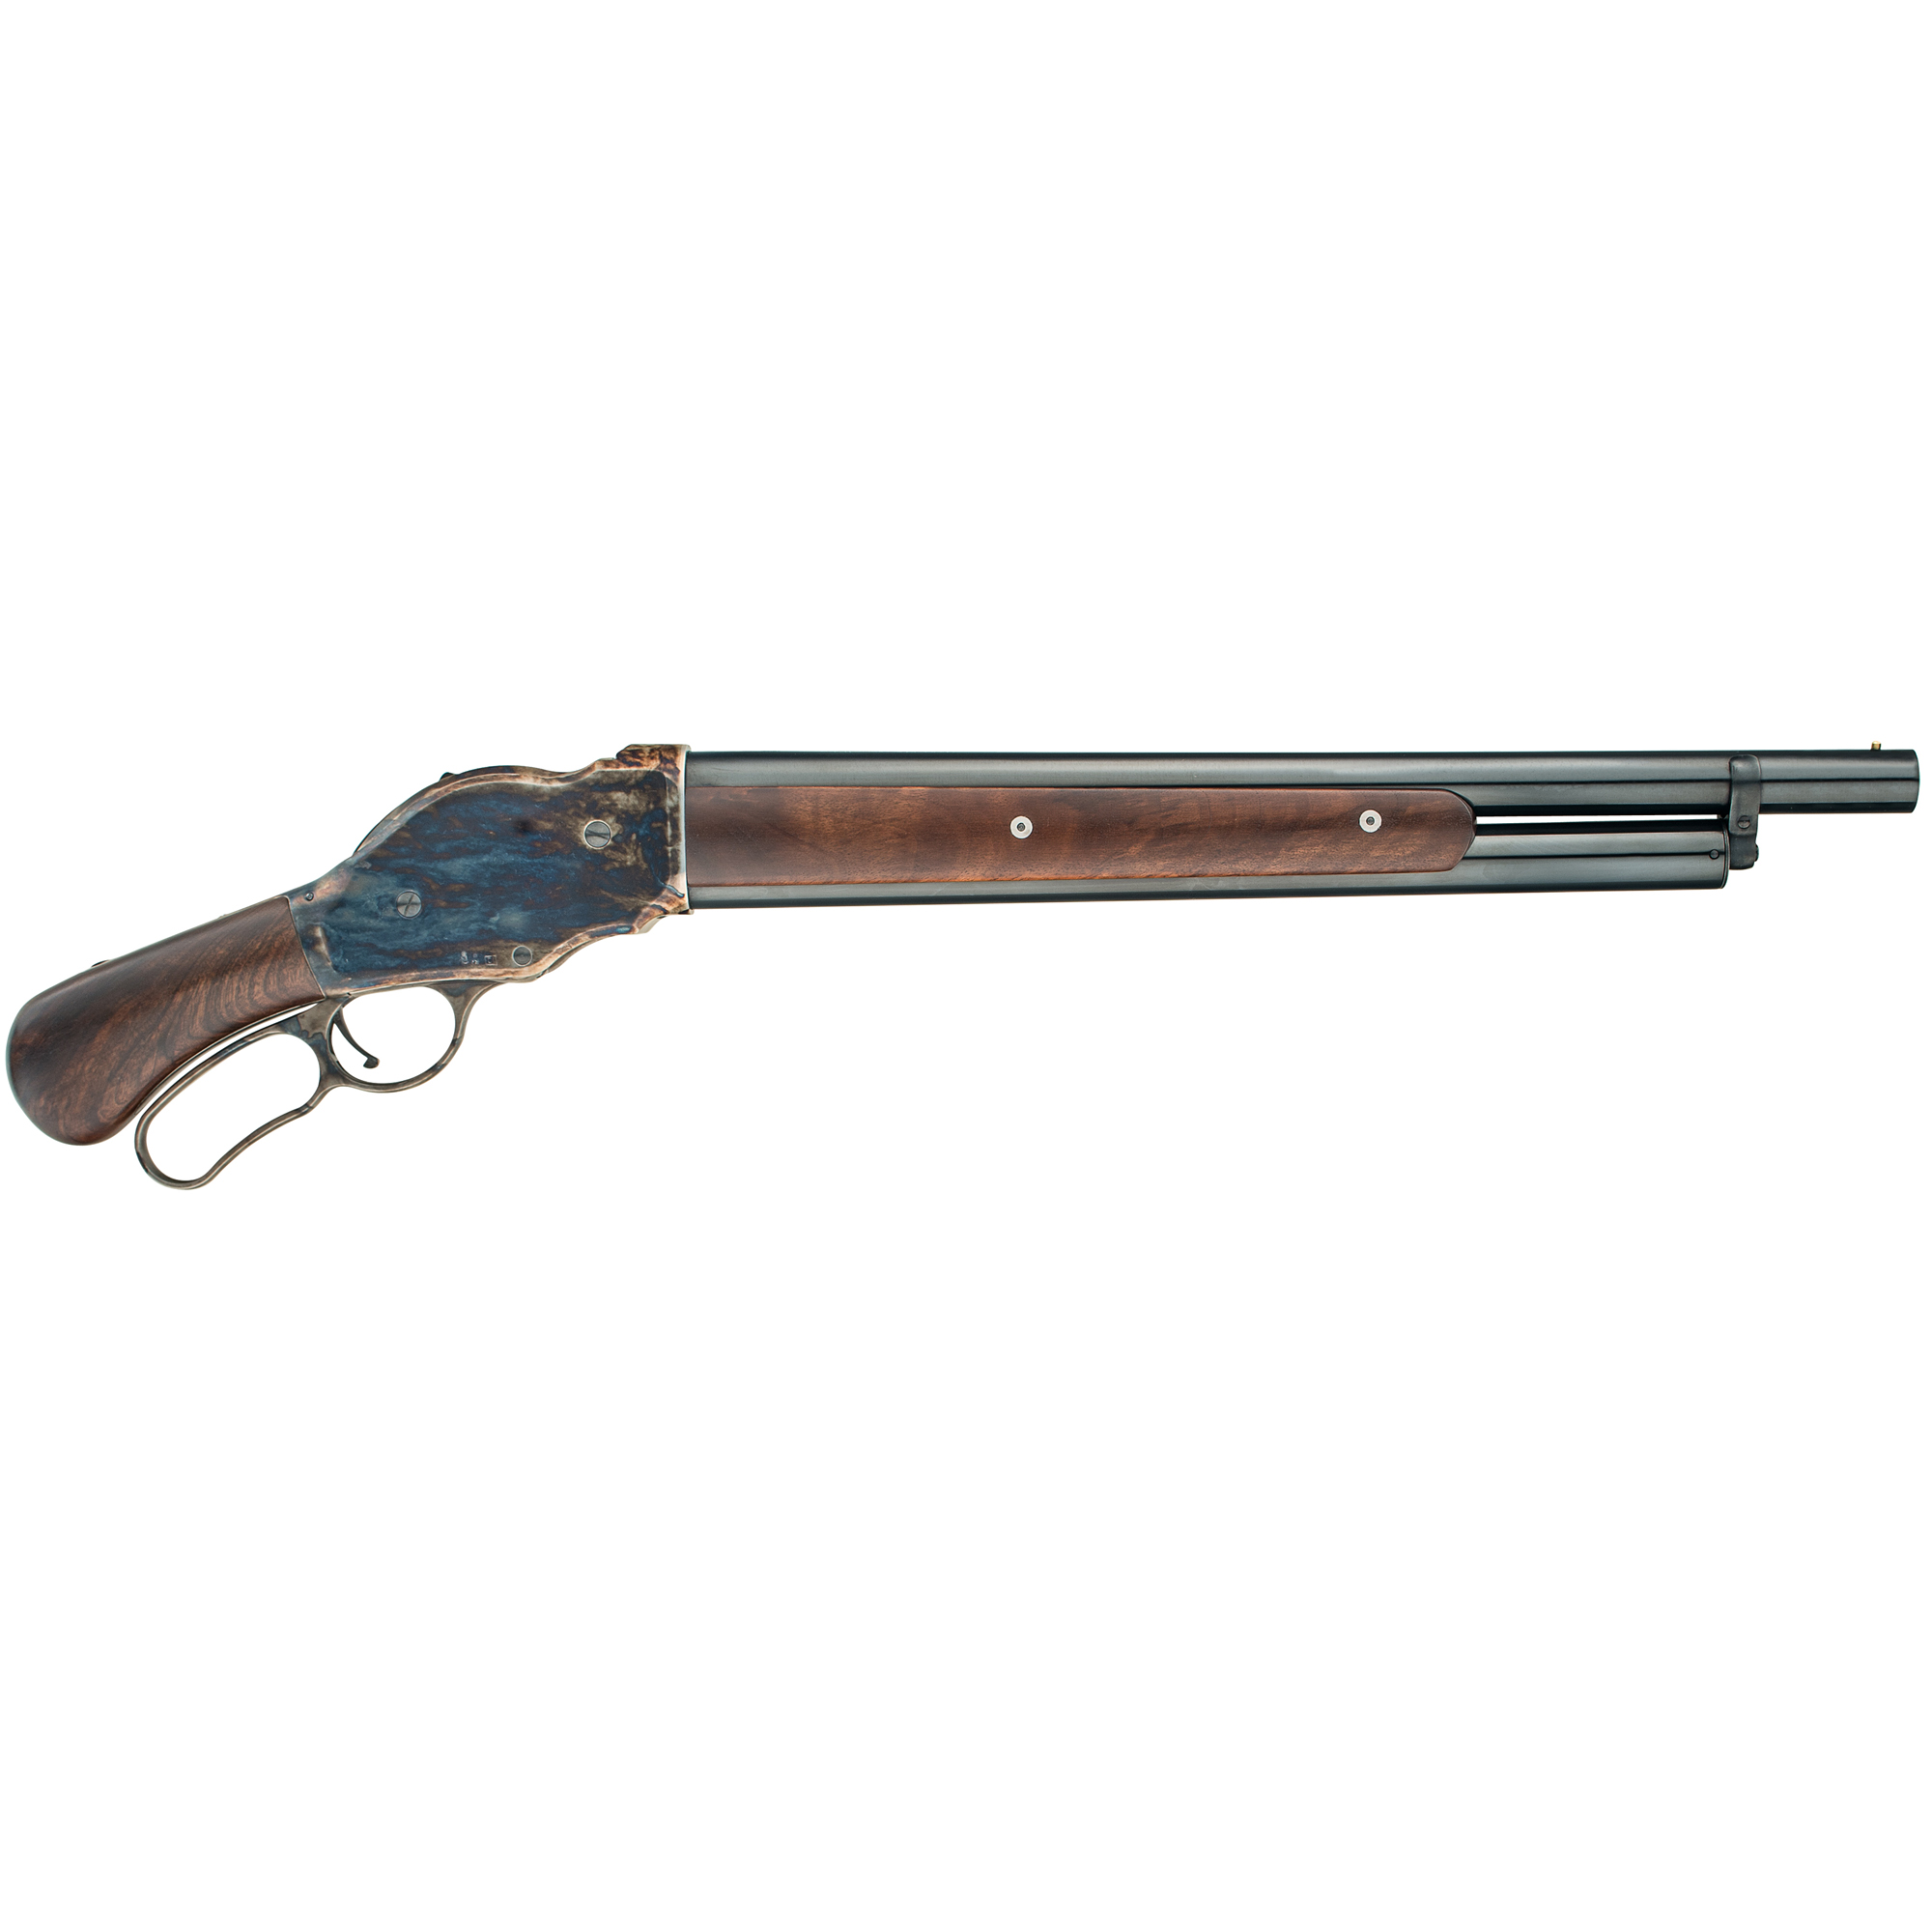 "Designed by John M. Browning for the Winchester Repeating Arms Company"" the 1887 lever action shotgun is considered to be the first successful repeating shotgun. The Chiappa Firearms' 1887 is a faithful reproduction of this classic firearm. The 1887 utilizes the design of the original solid lever that includes an innovative internal safety. Featuring a European walnut stock and forearm and color case finished receiver"" the 1887 is as beautiful as it is functional."